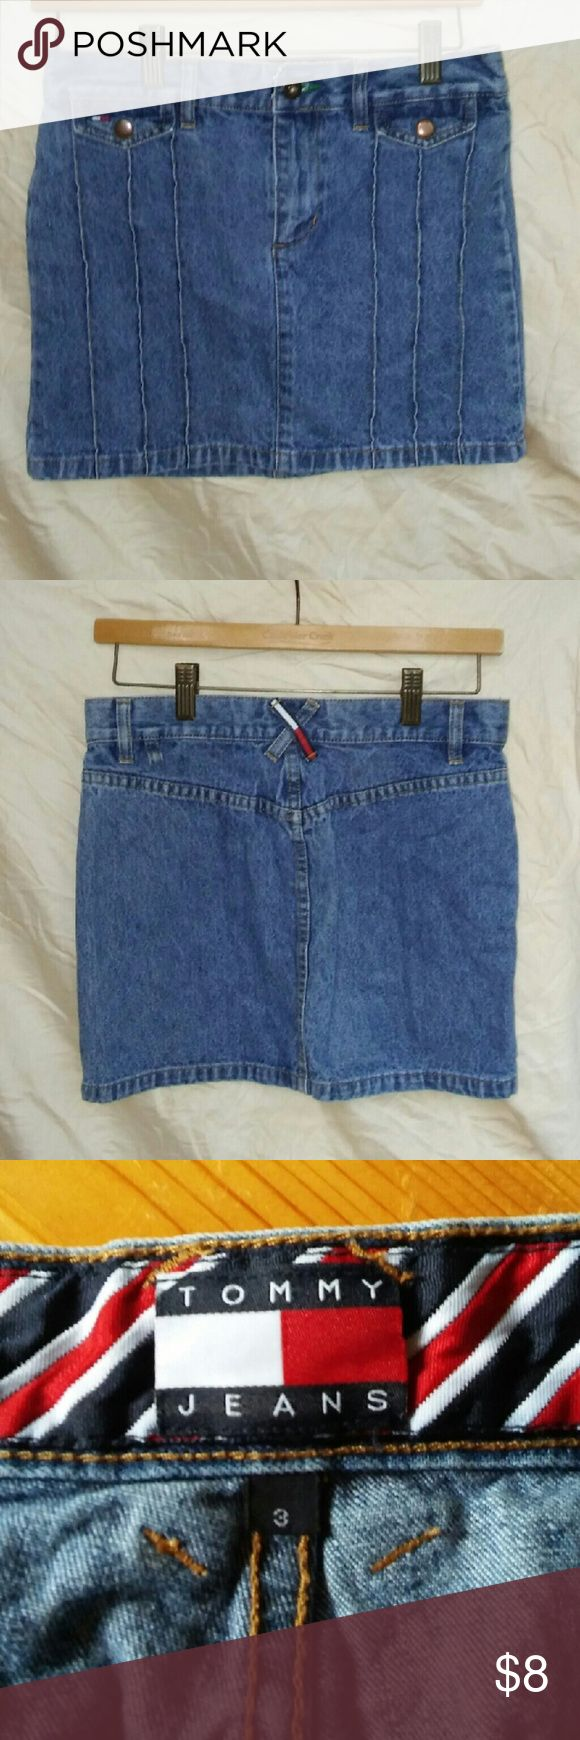 TOMMY JEANS Mini-Skirt, 3 Denim, Authentic Vintage Tommy Jeans Mini skirt in excellent condition.  Denim.  SIZE 3.  Red white and blue ribbon detailing.  From a smoke free home. Make an offer! Tommy Hilfiger Skirts Mini